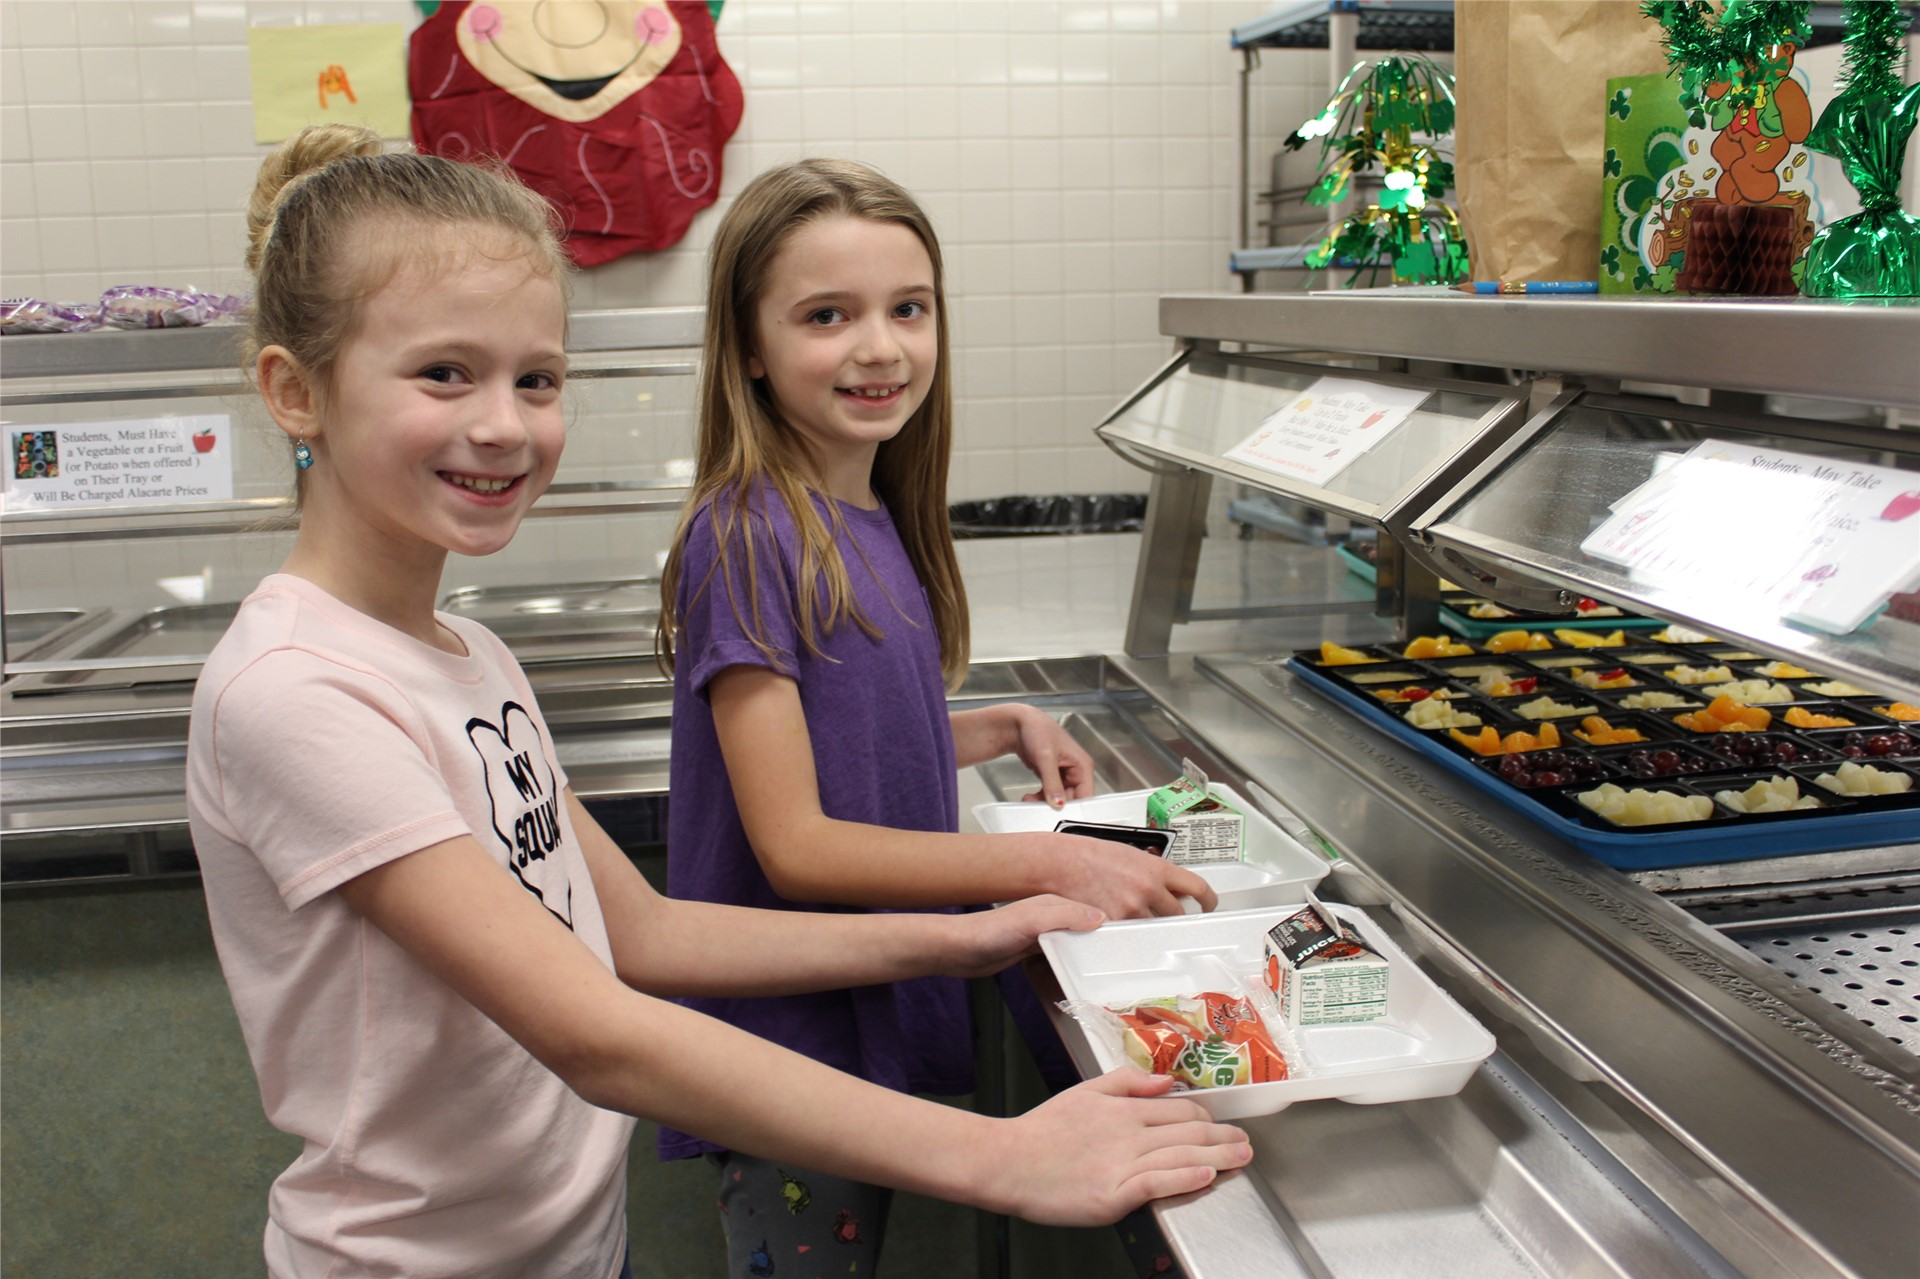 Elementary Students with Lunch Trays and Healthy Options